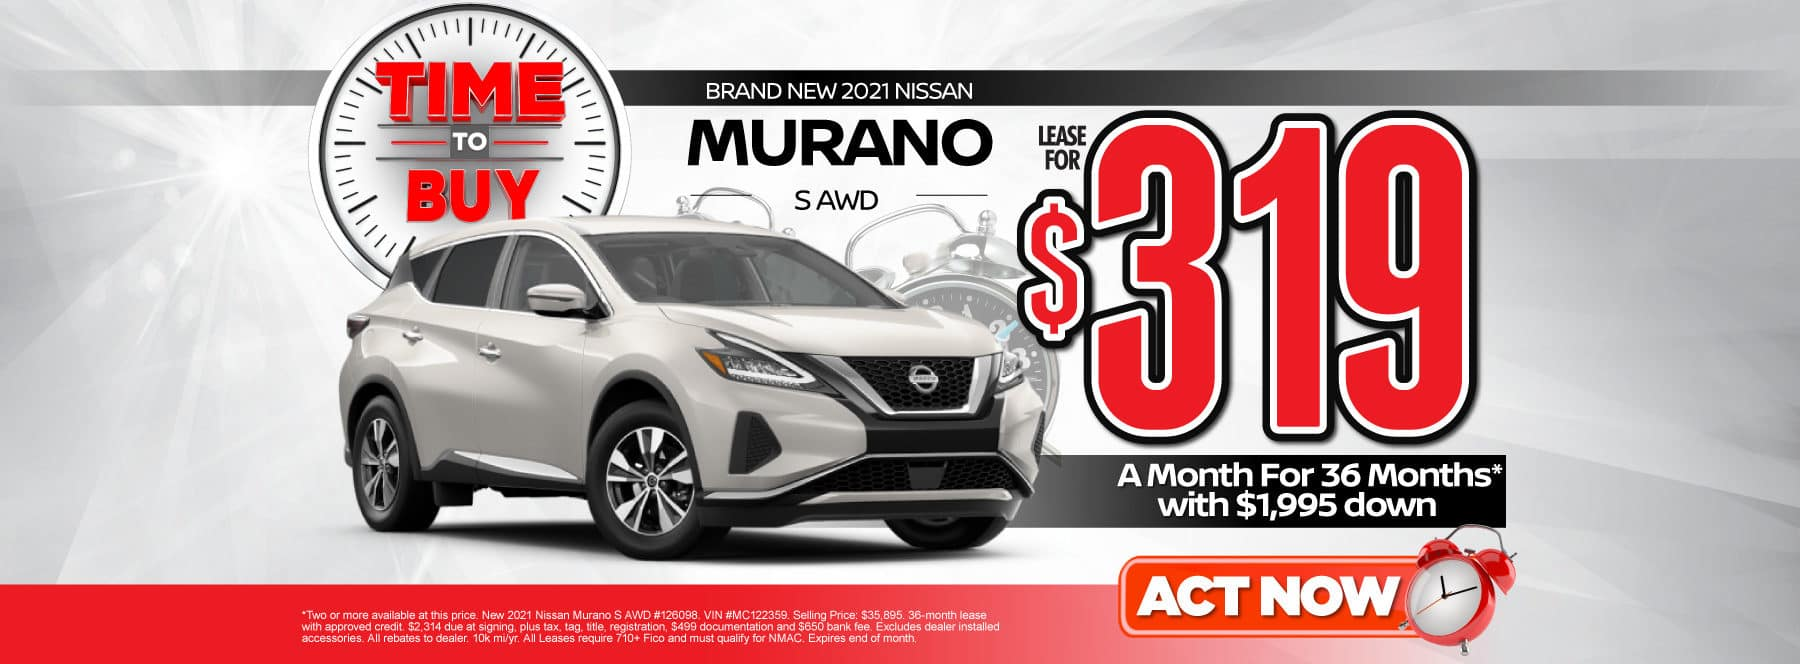 New 2021 Nissan Murano | Lease for $319 a month | Act Now